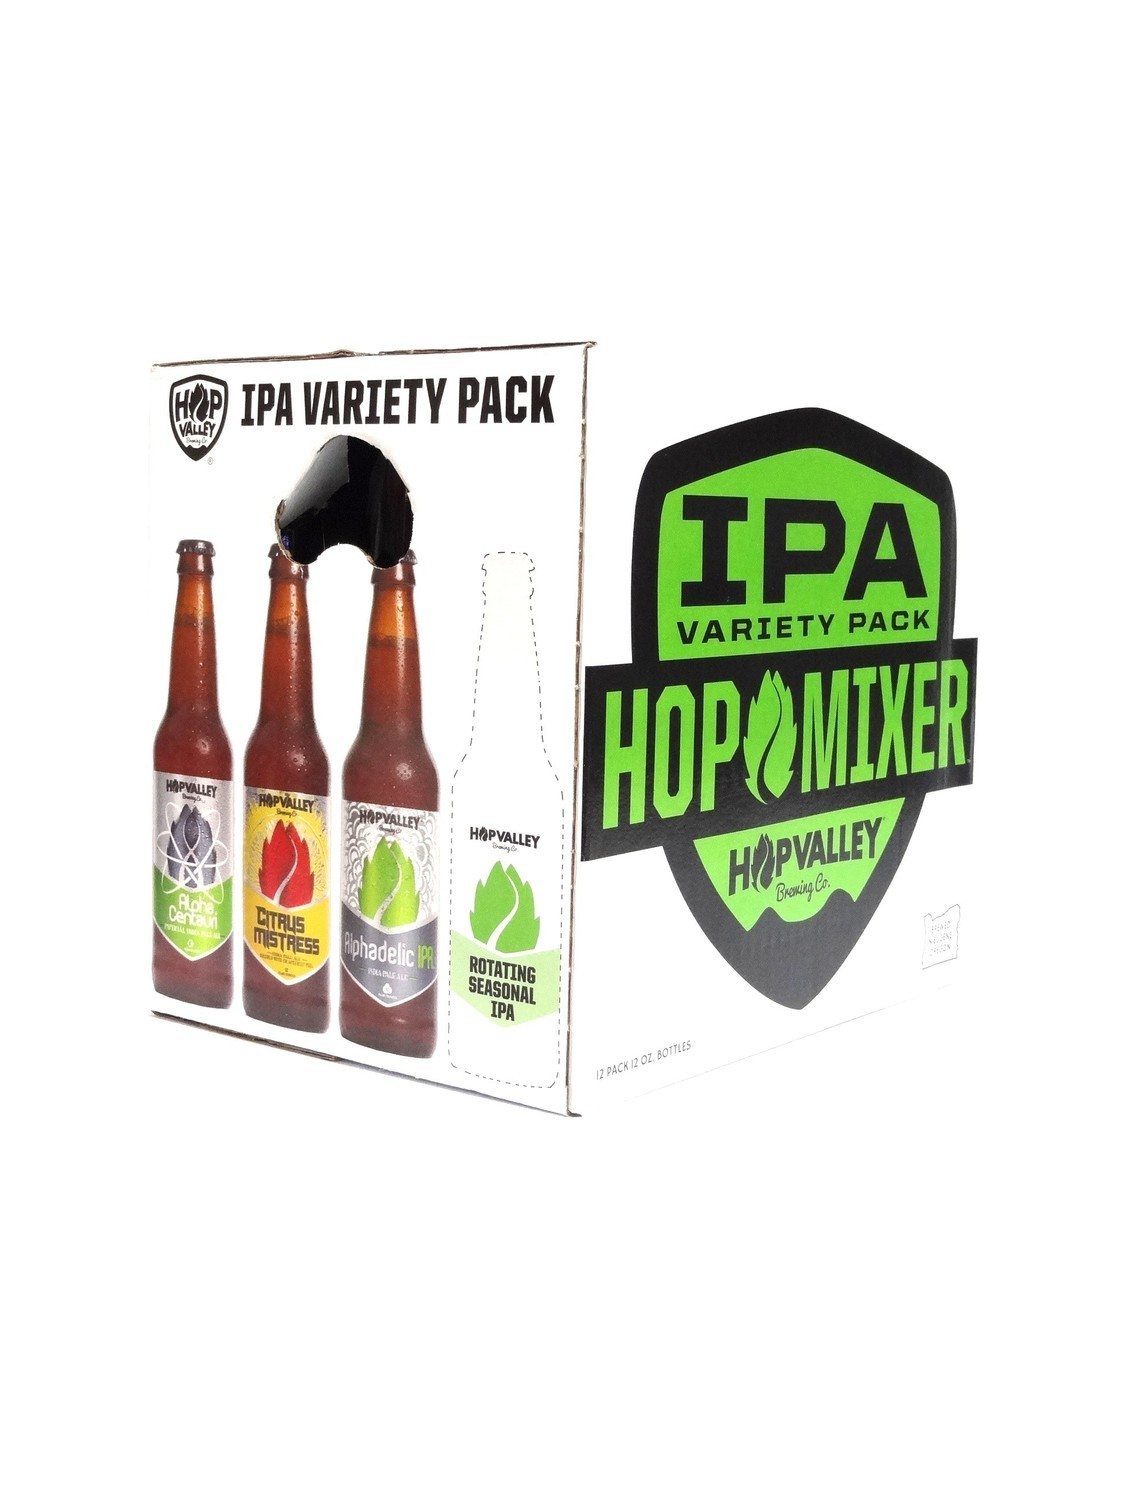 IPA Variety 12oz 12pk Bottle by Hop Valley ( )C